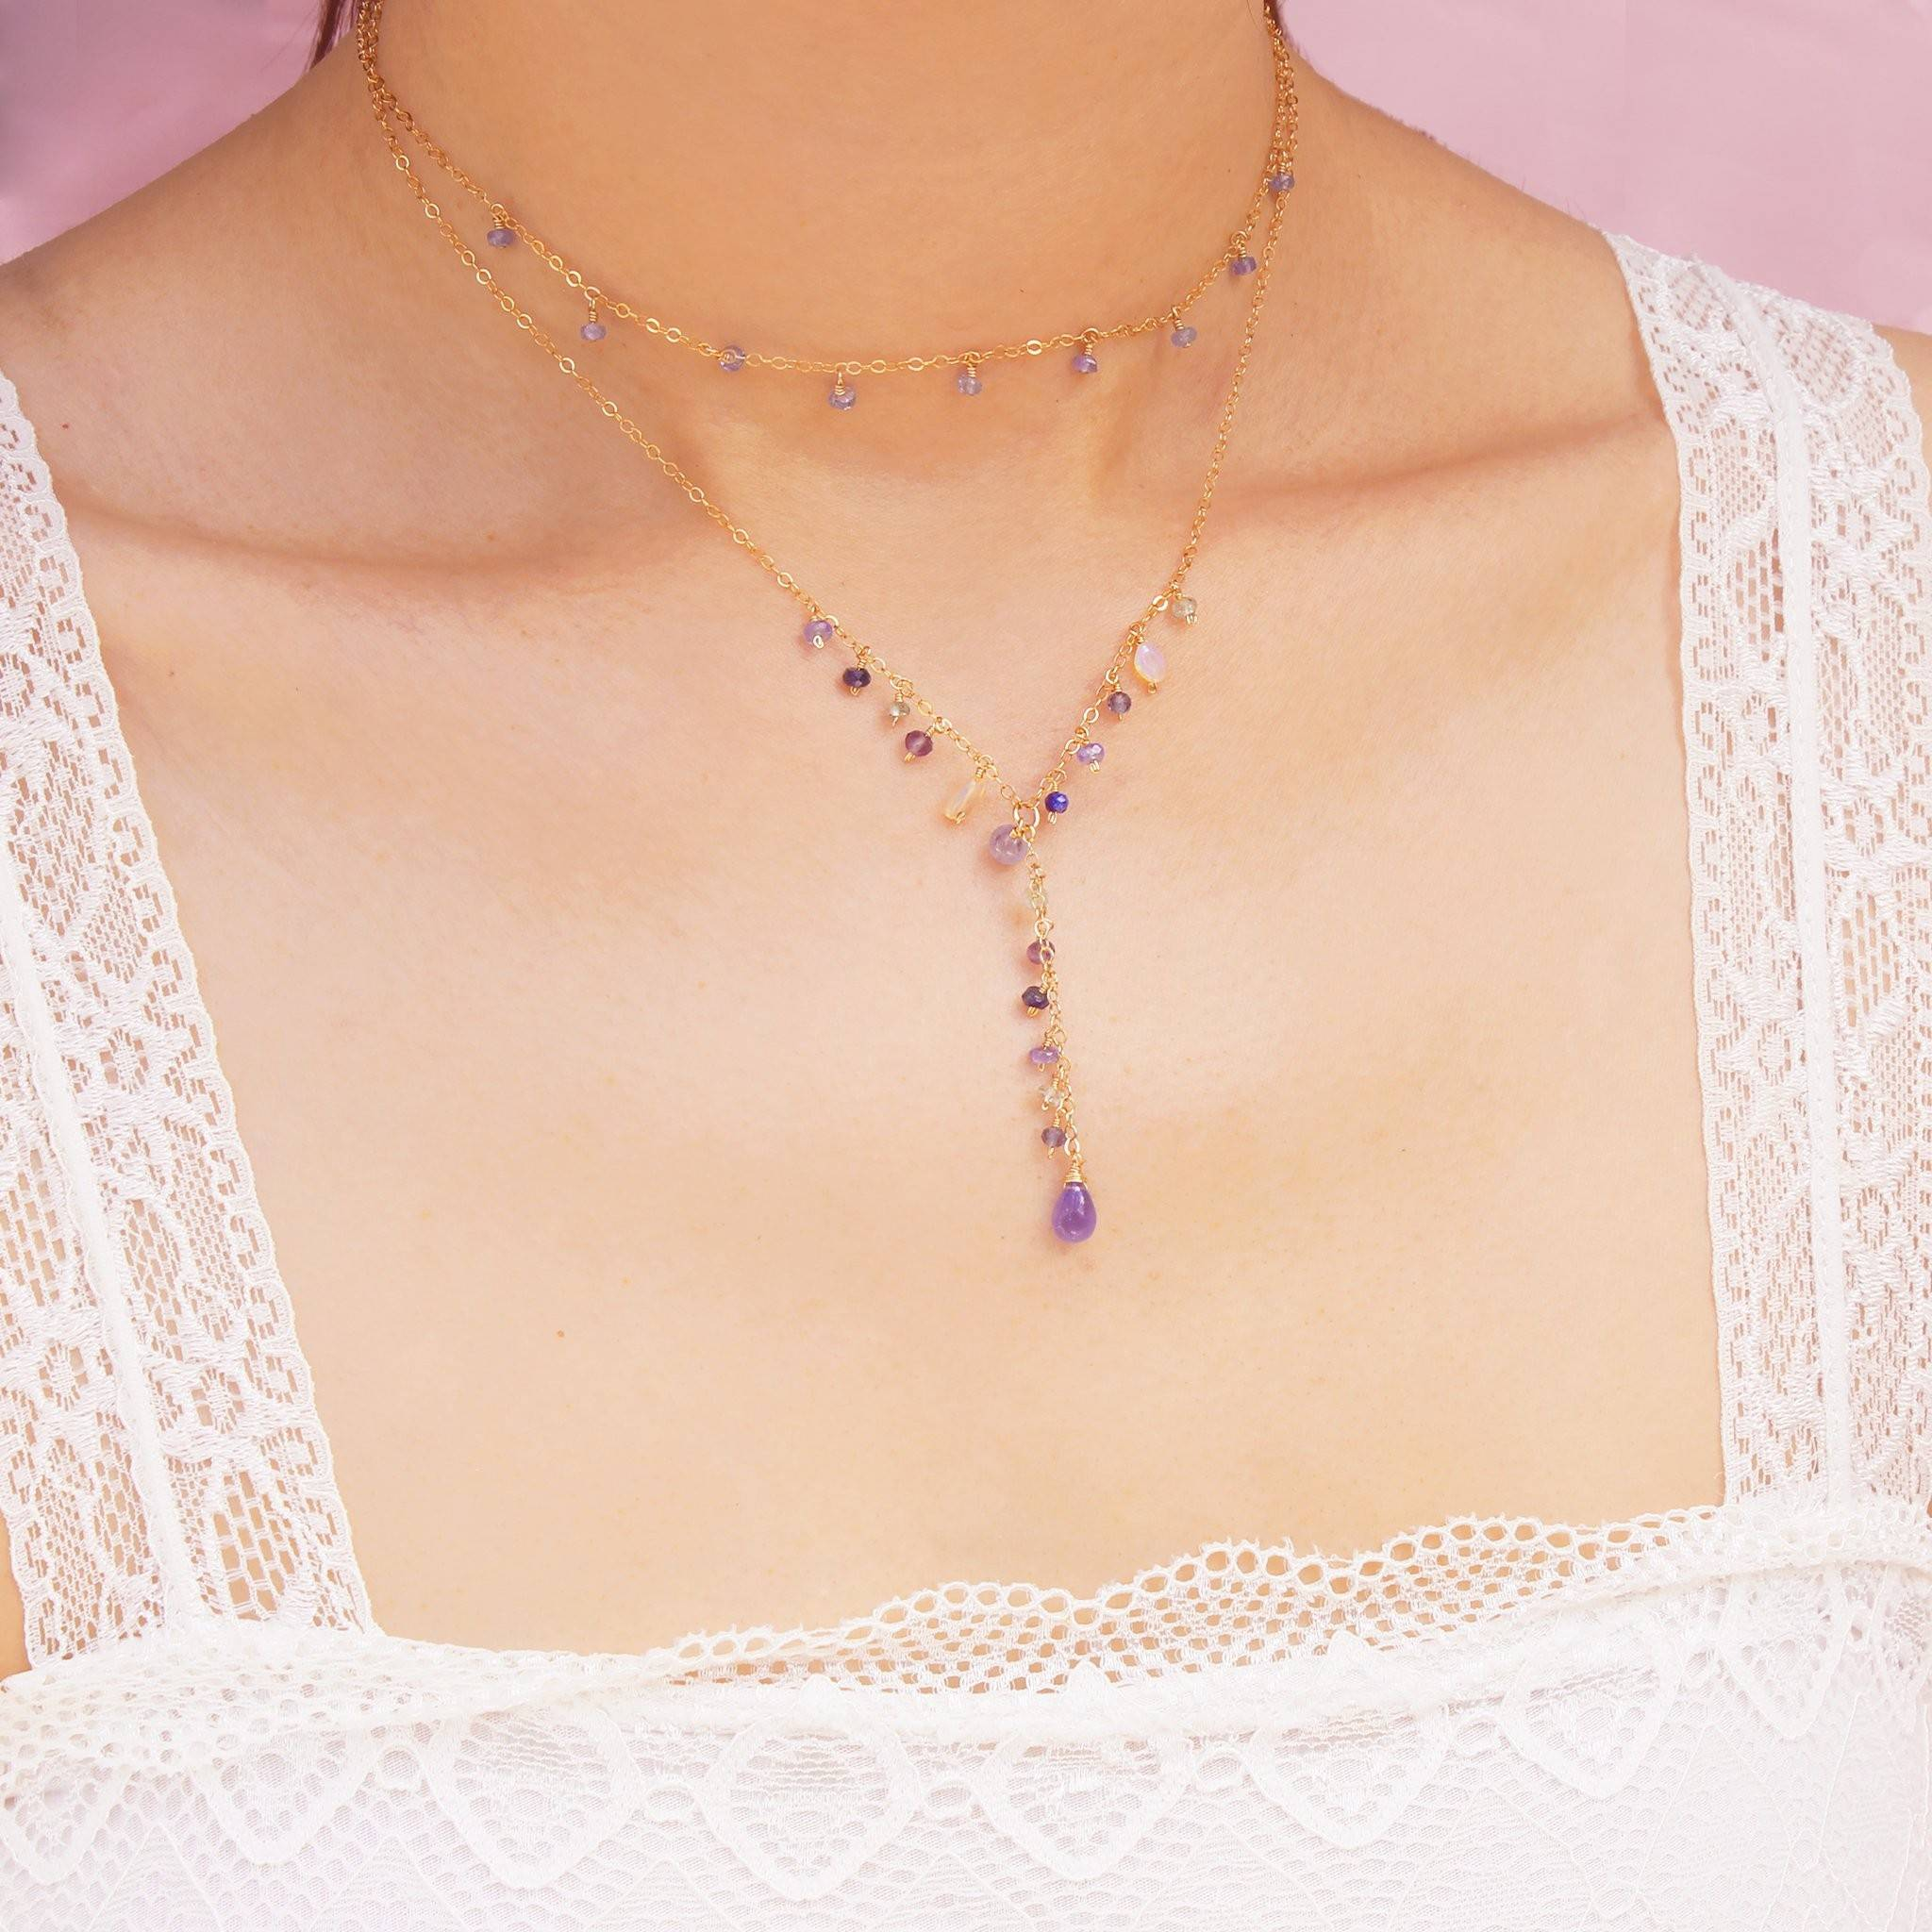 Luxe Treasure Necklace: Lavender